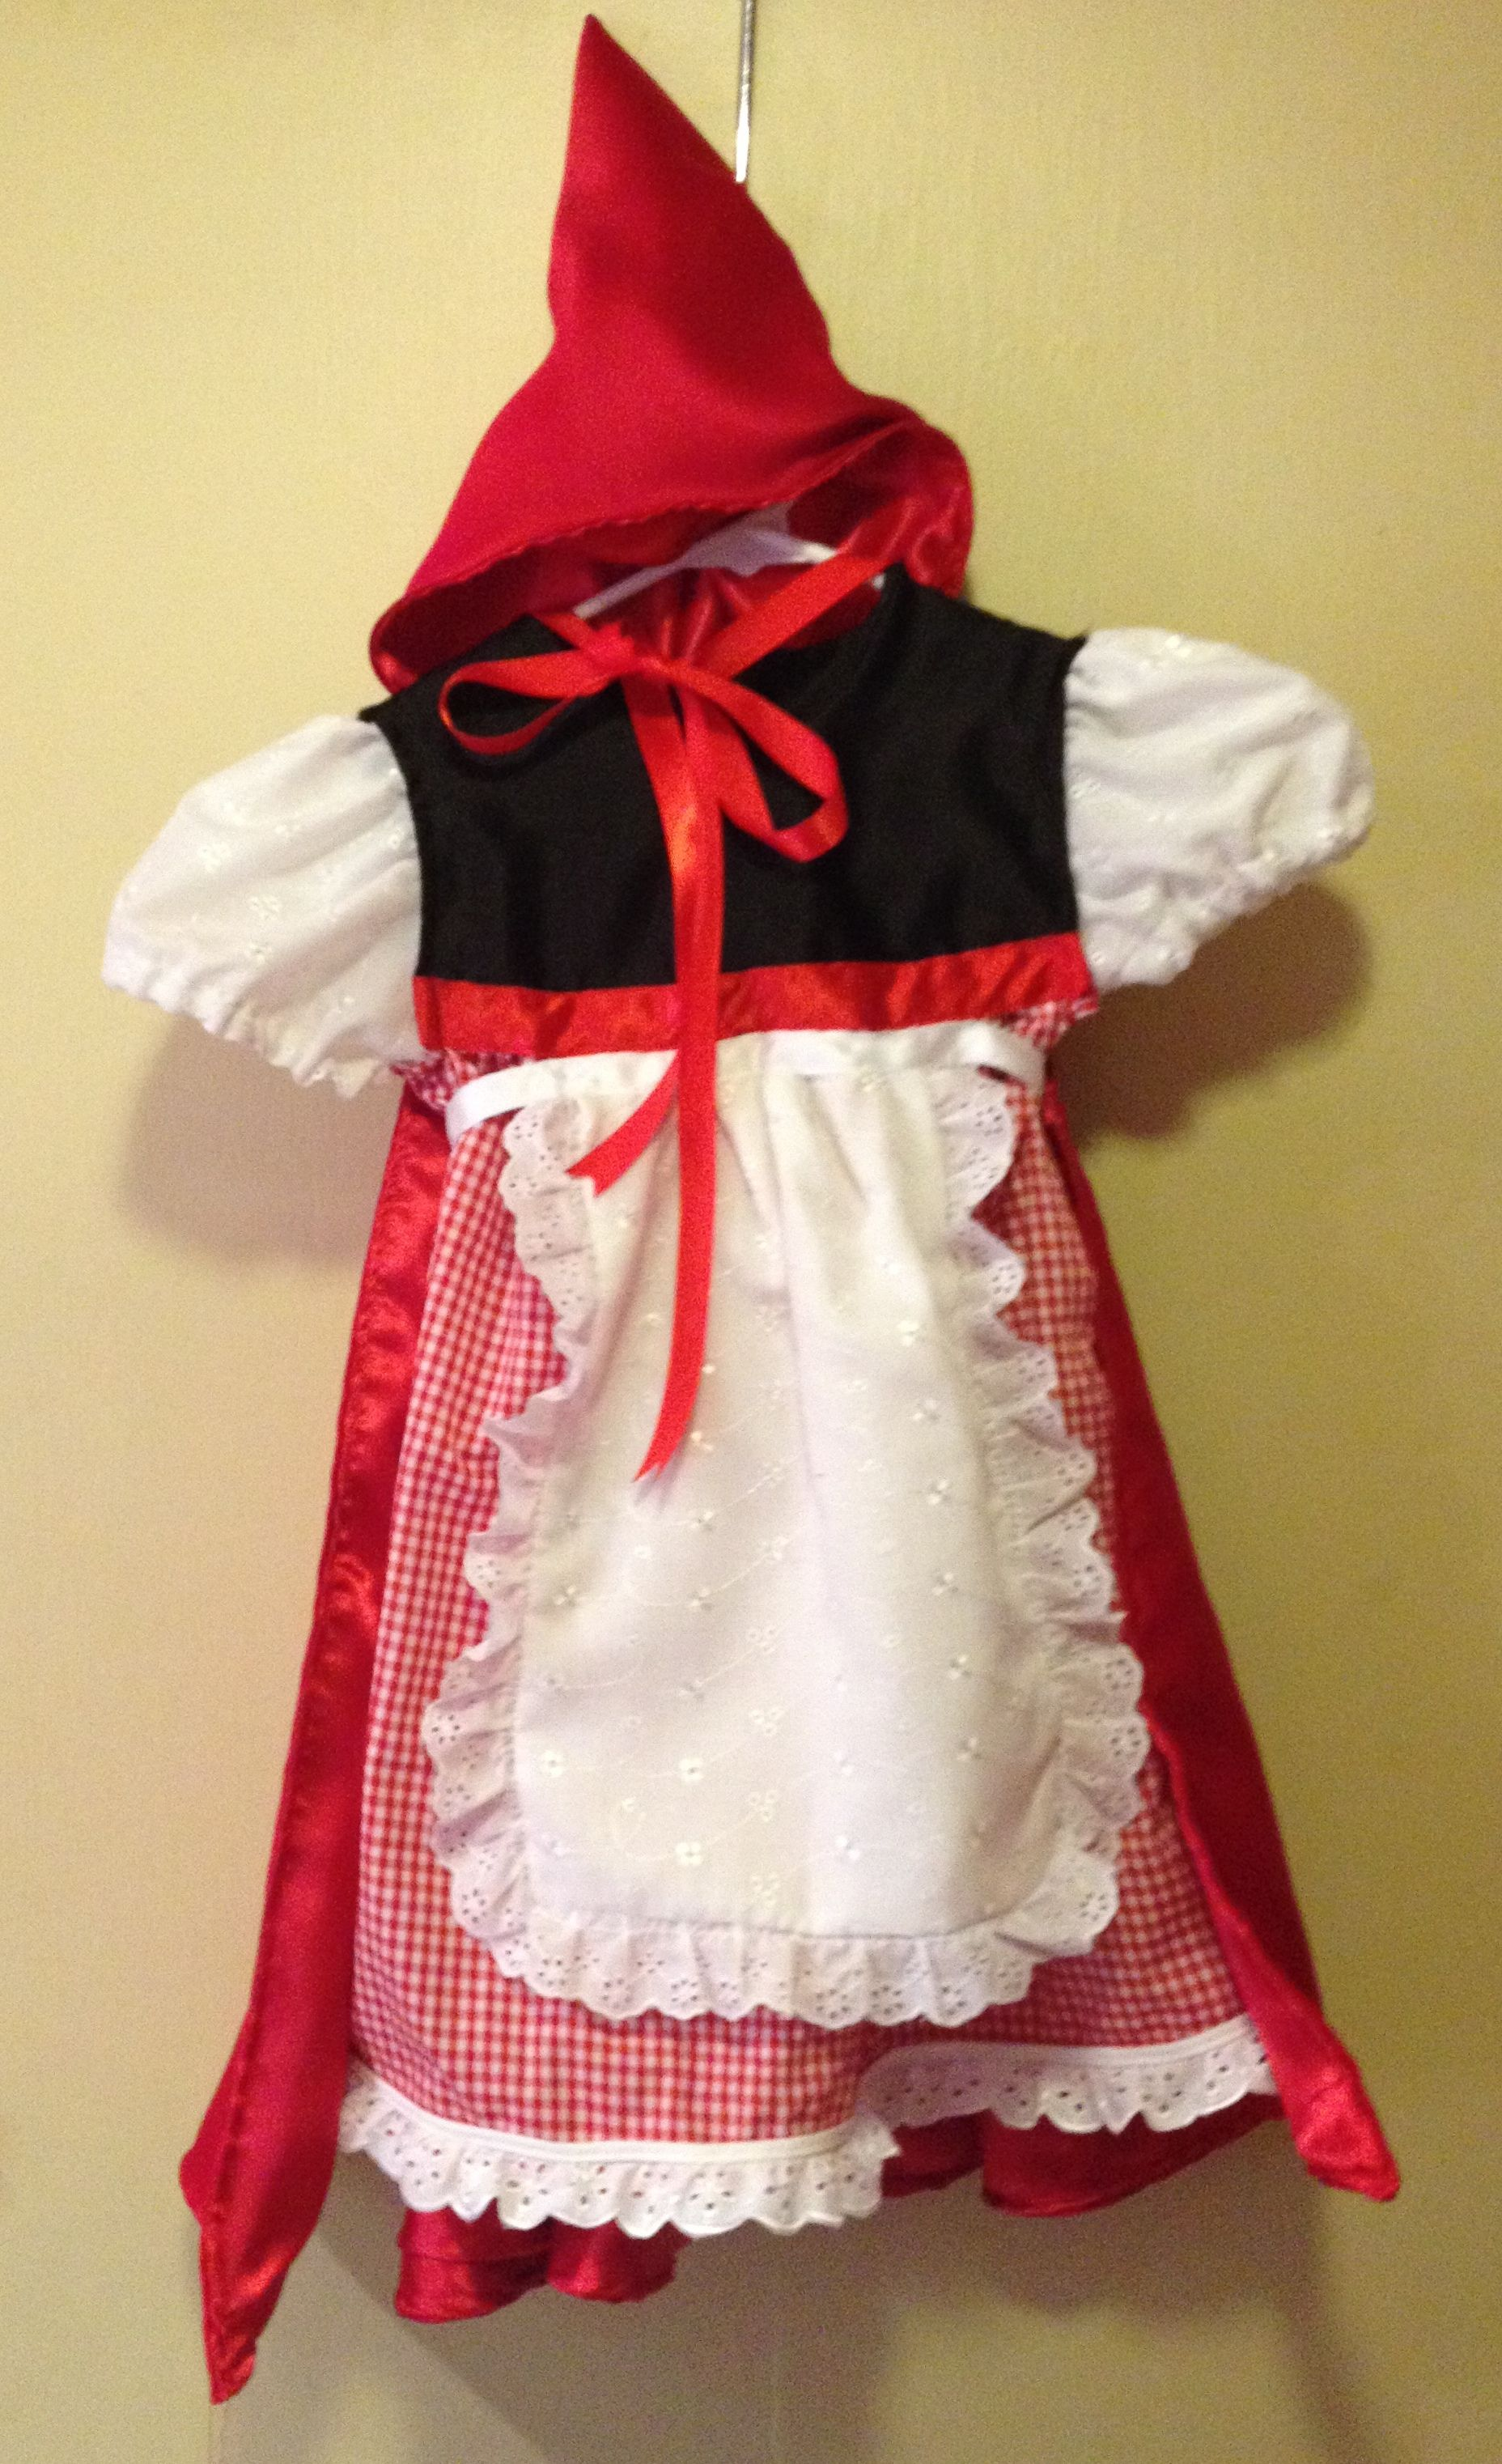 Fred astaire red dress 2t